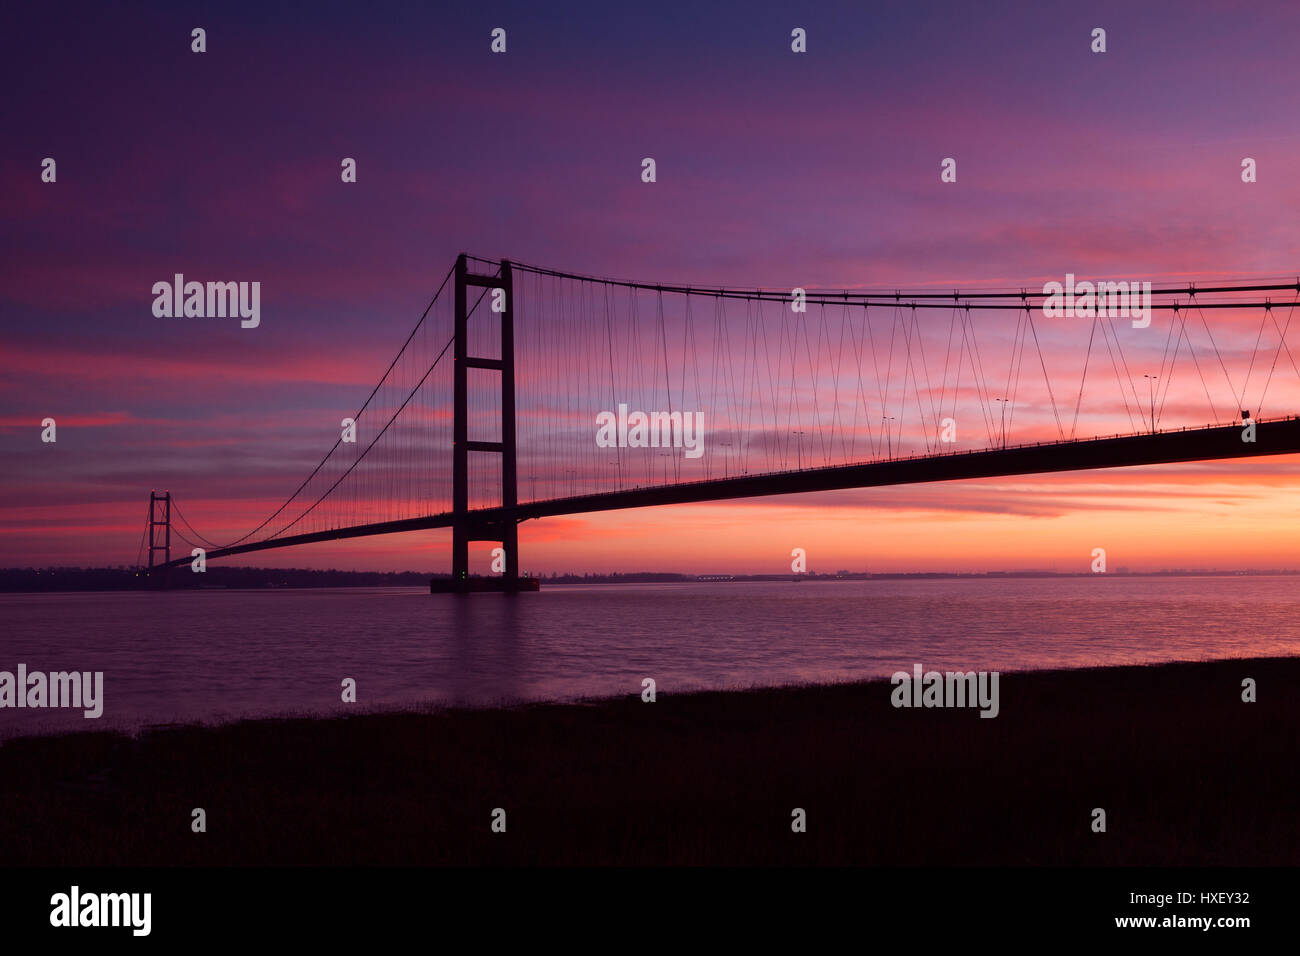 Barton-upon-Humber, North Lincolnshire, UK. 26th March 2017. The Humber Bridge at sunrise. - Stock Image